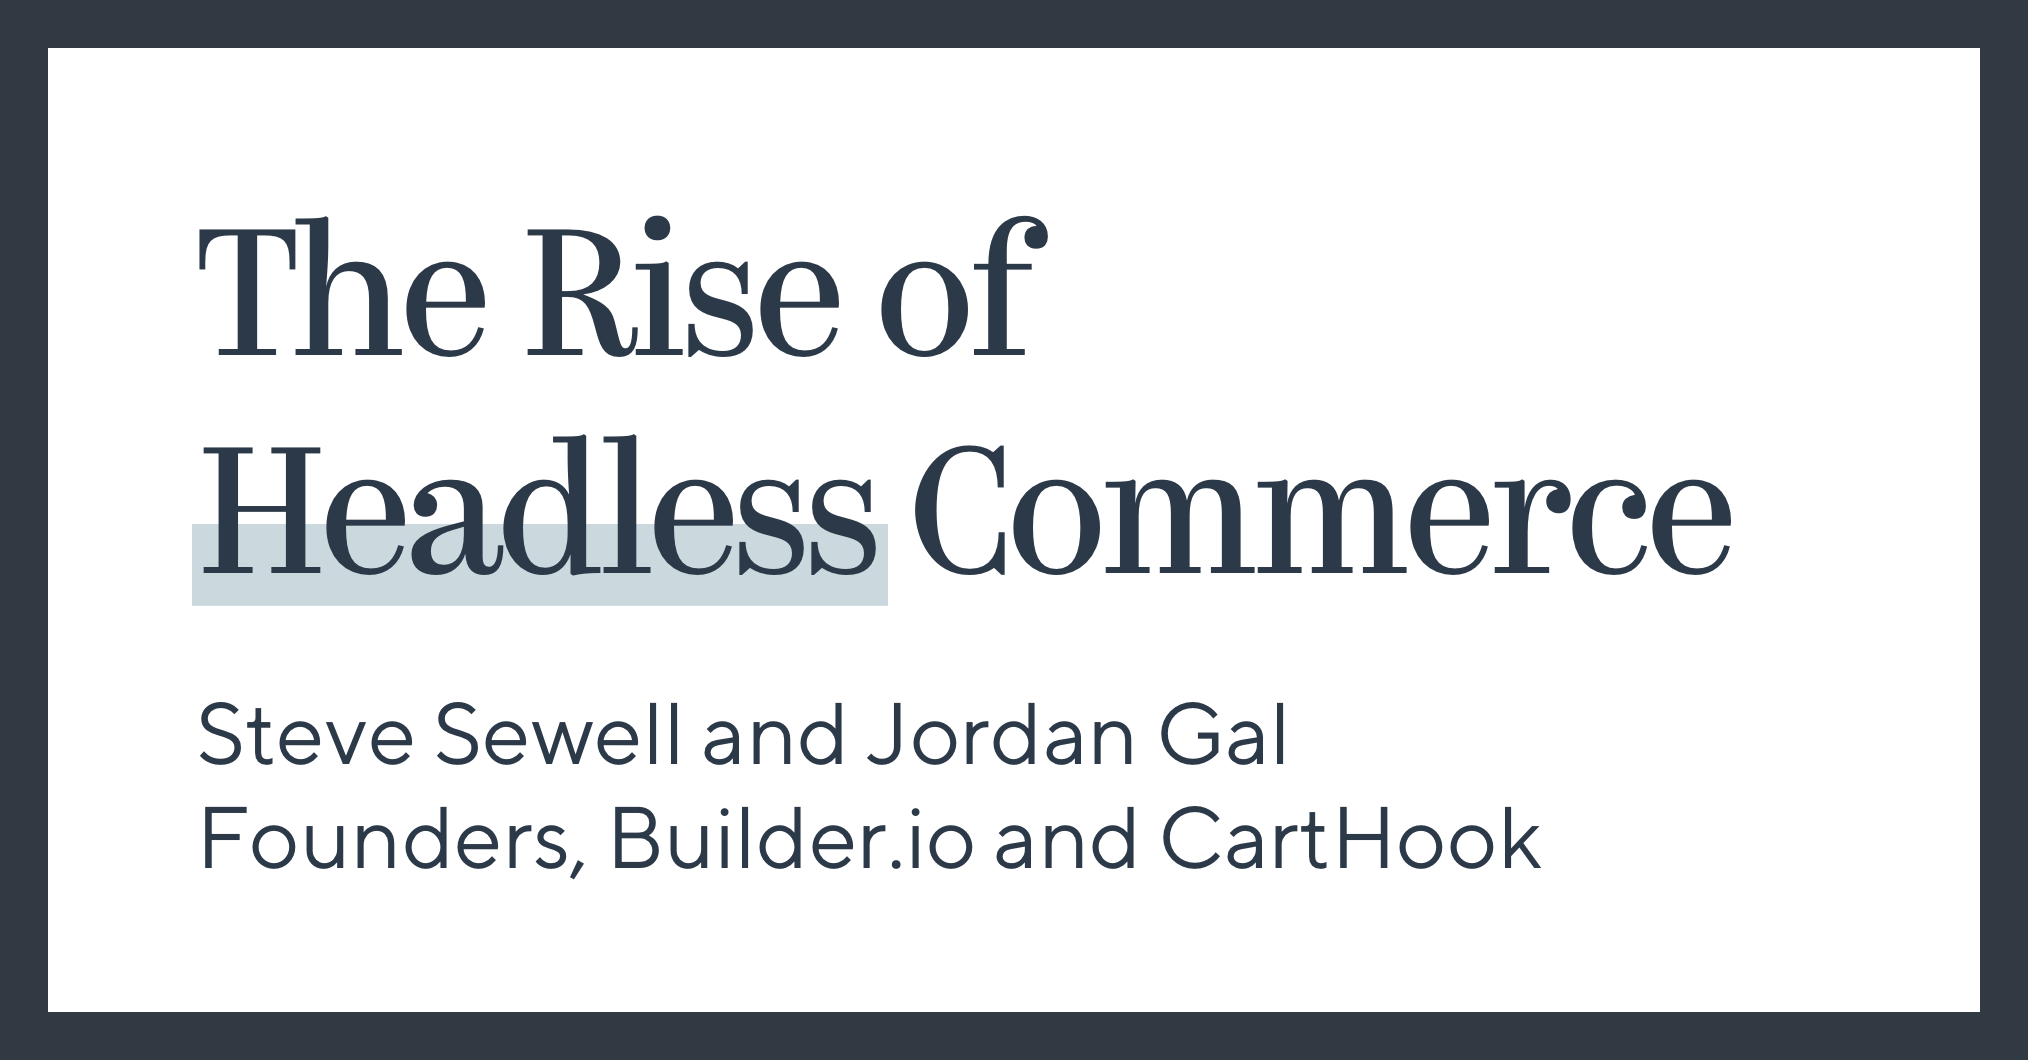 The Rise of Headless Commerce